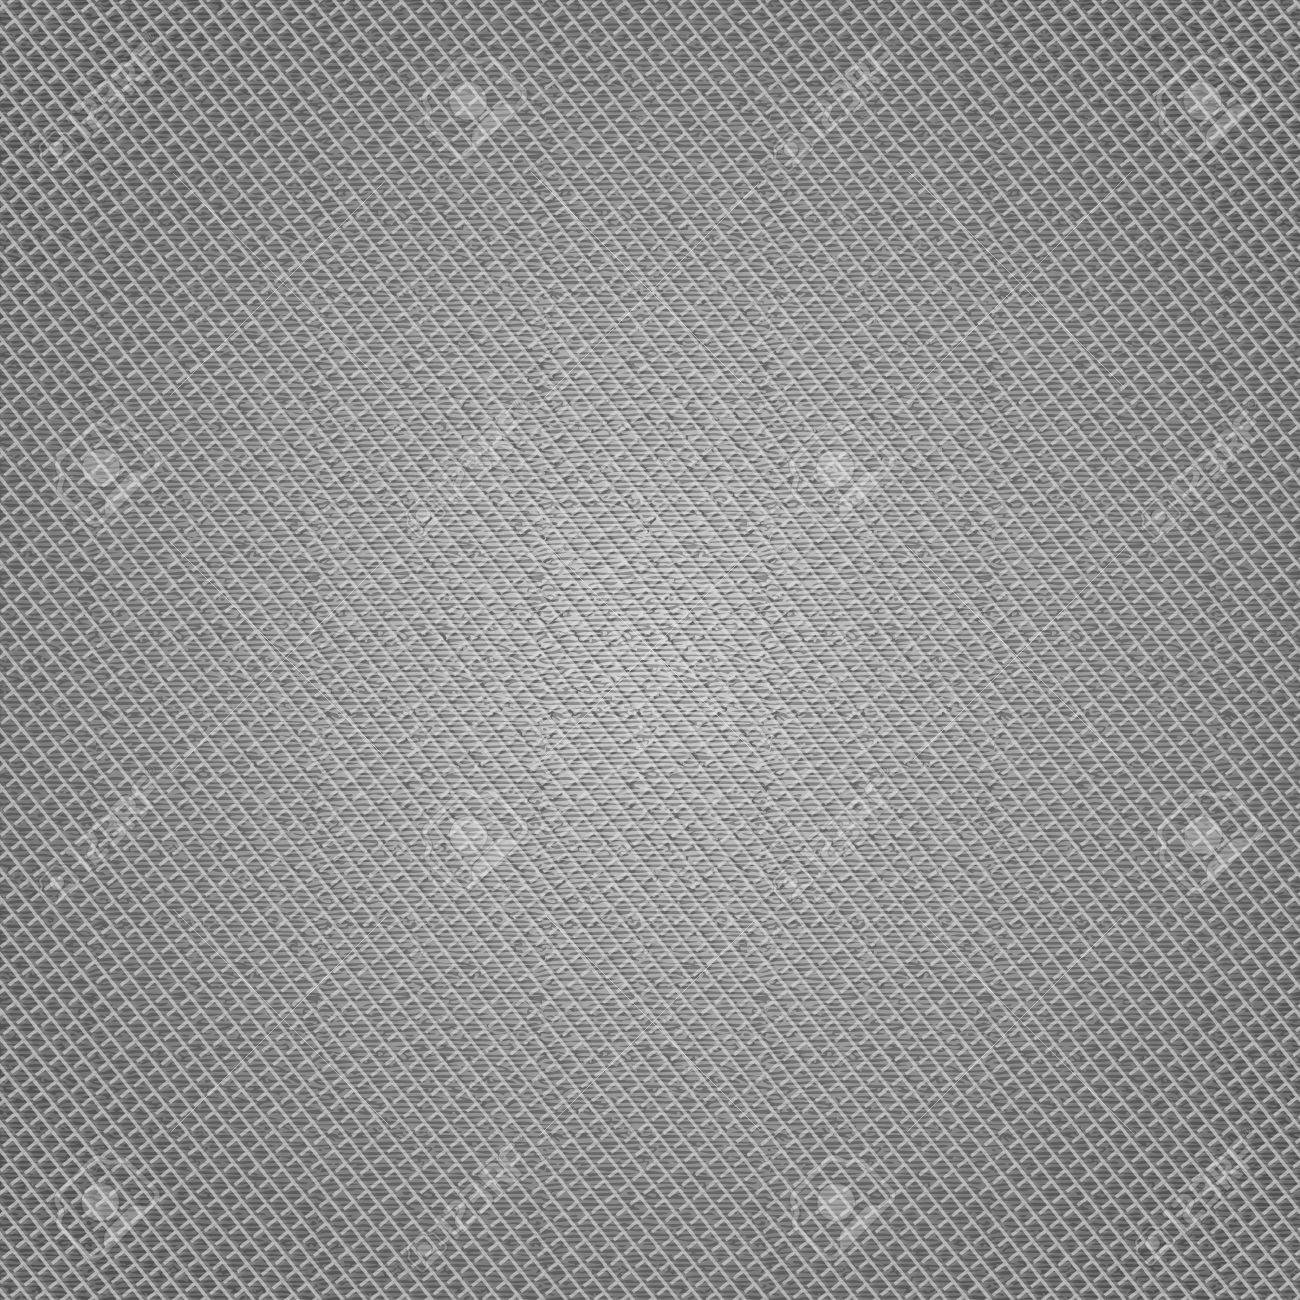 Abstract metallic grid gray background Stock Vector - 15363593